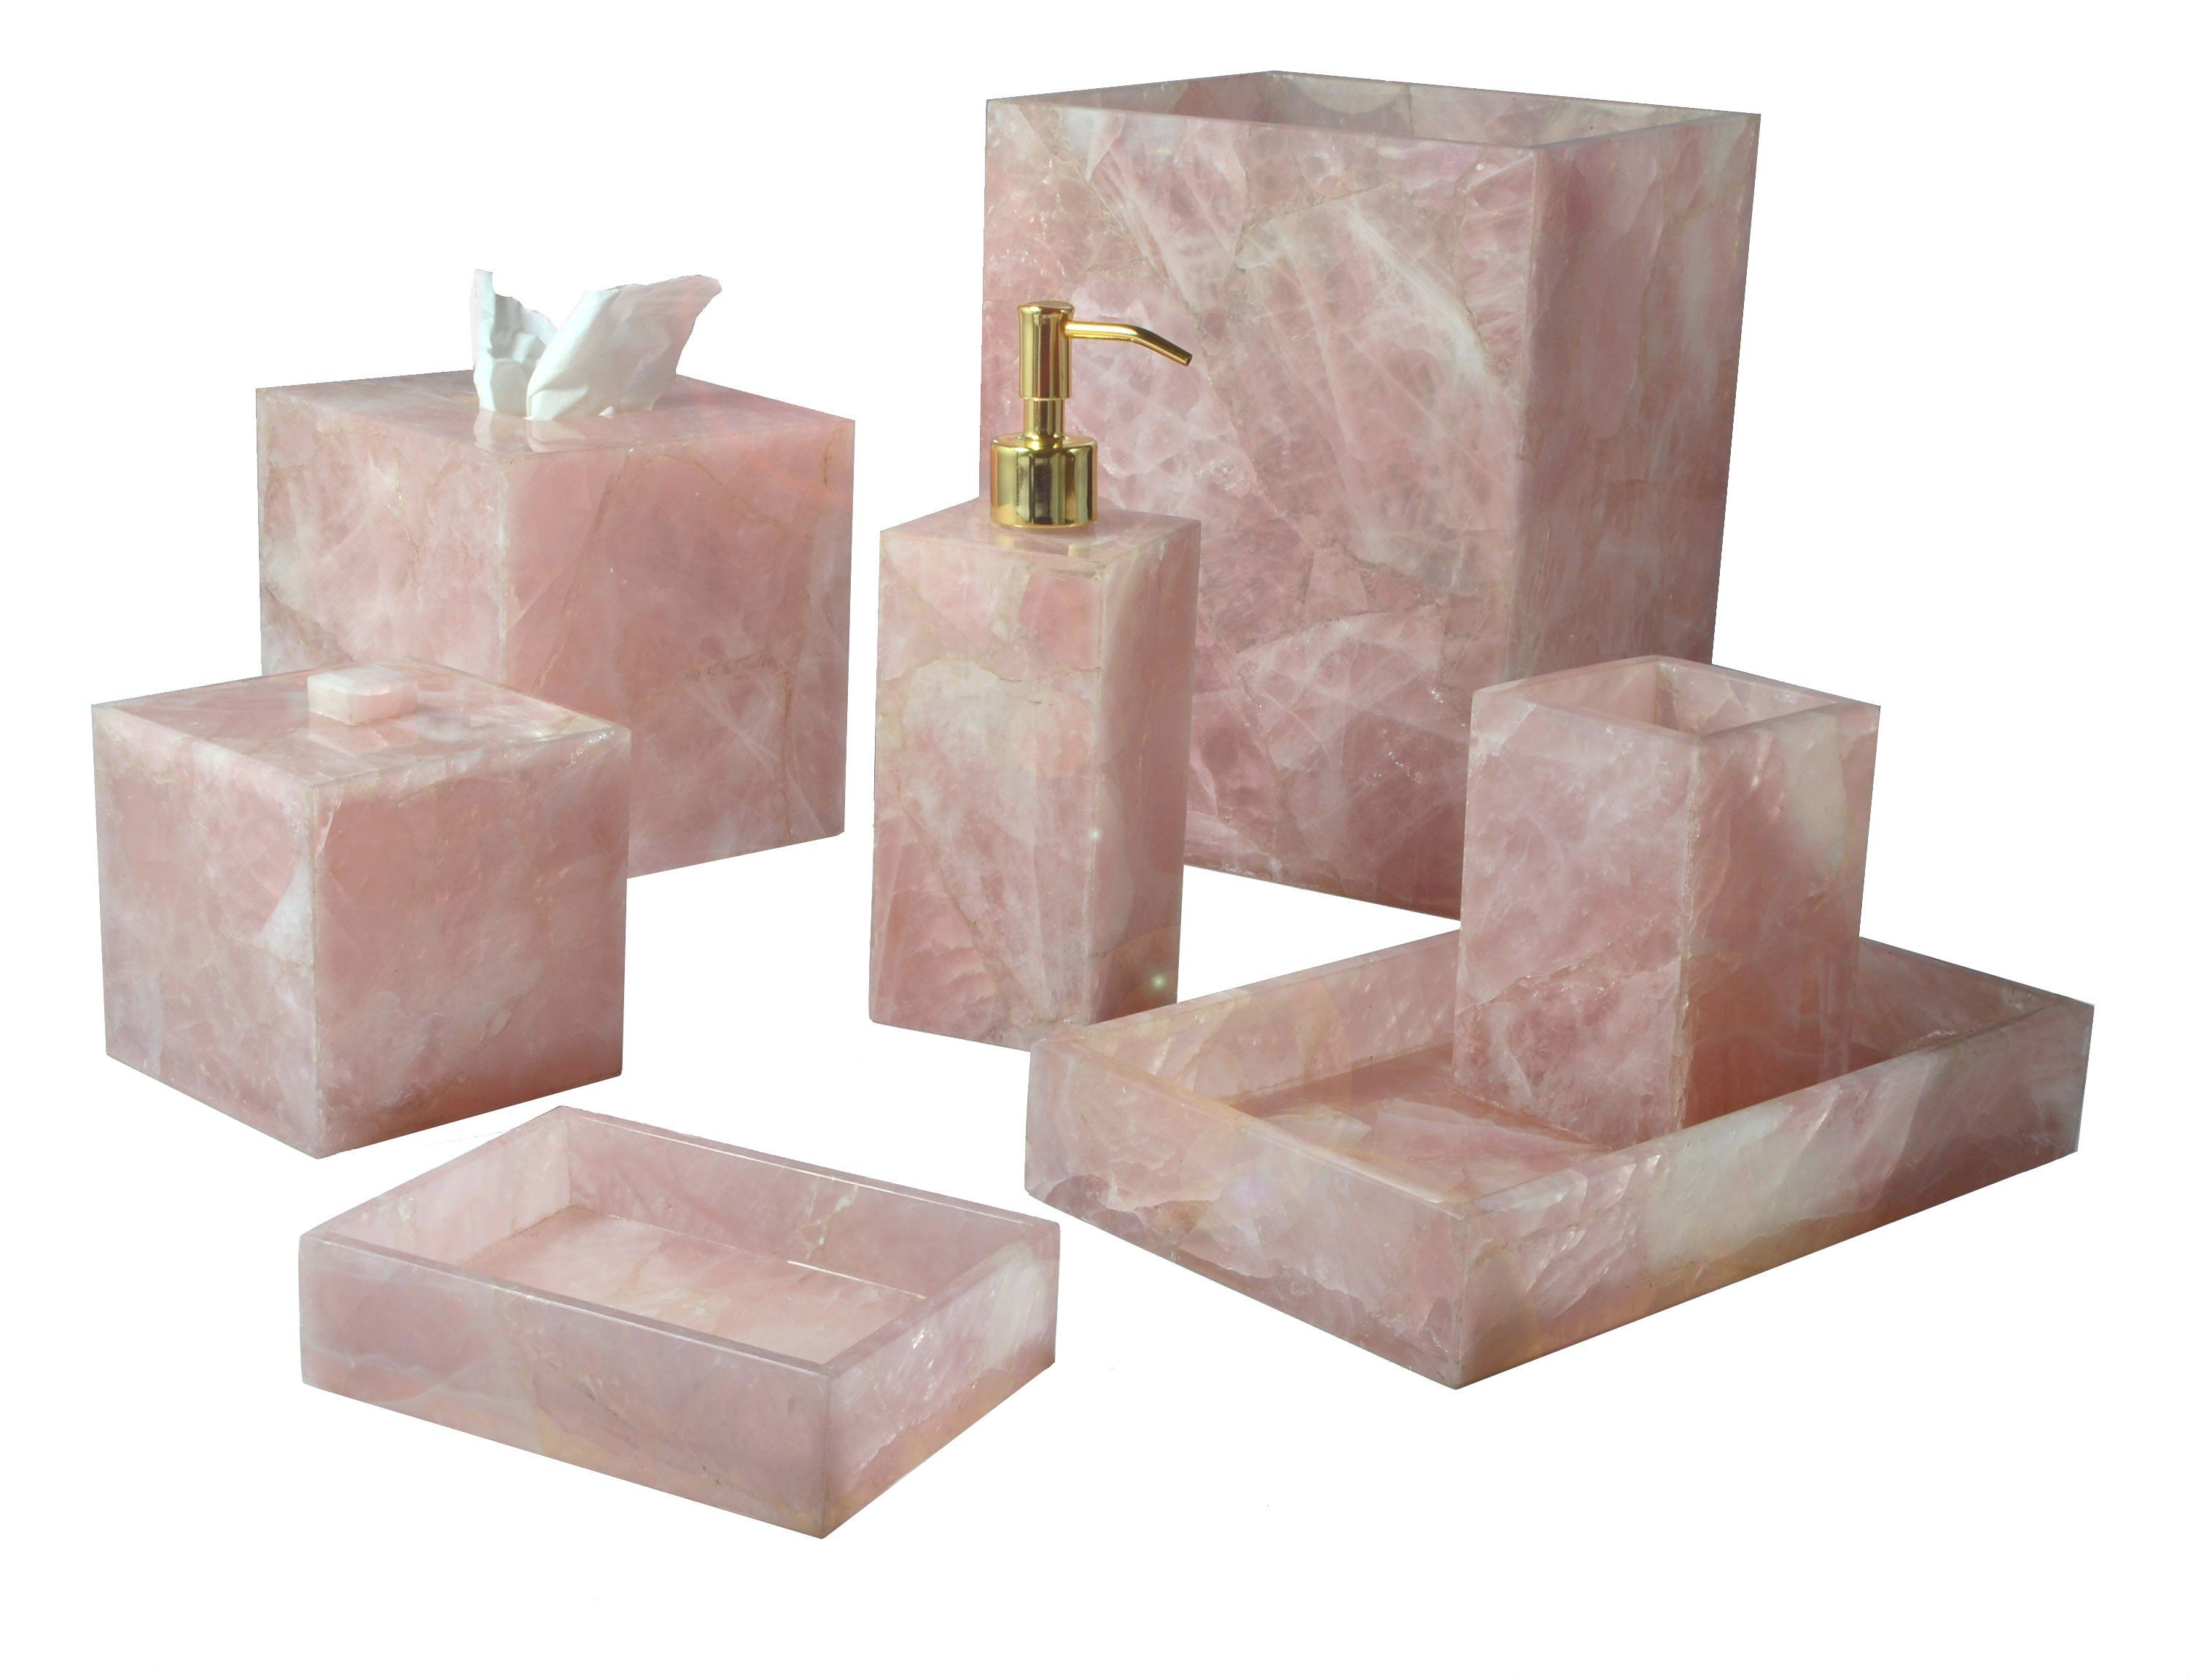 Mike And Ally Taj Premium Gemstone Bath Accessories Rose Quartz